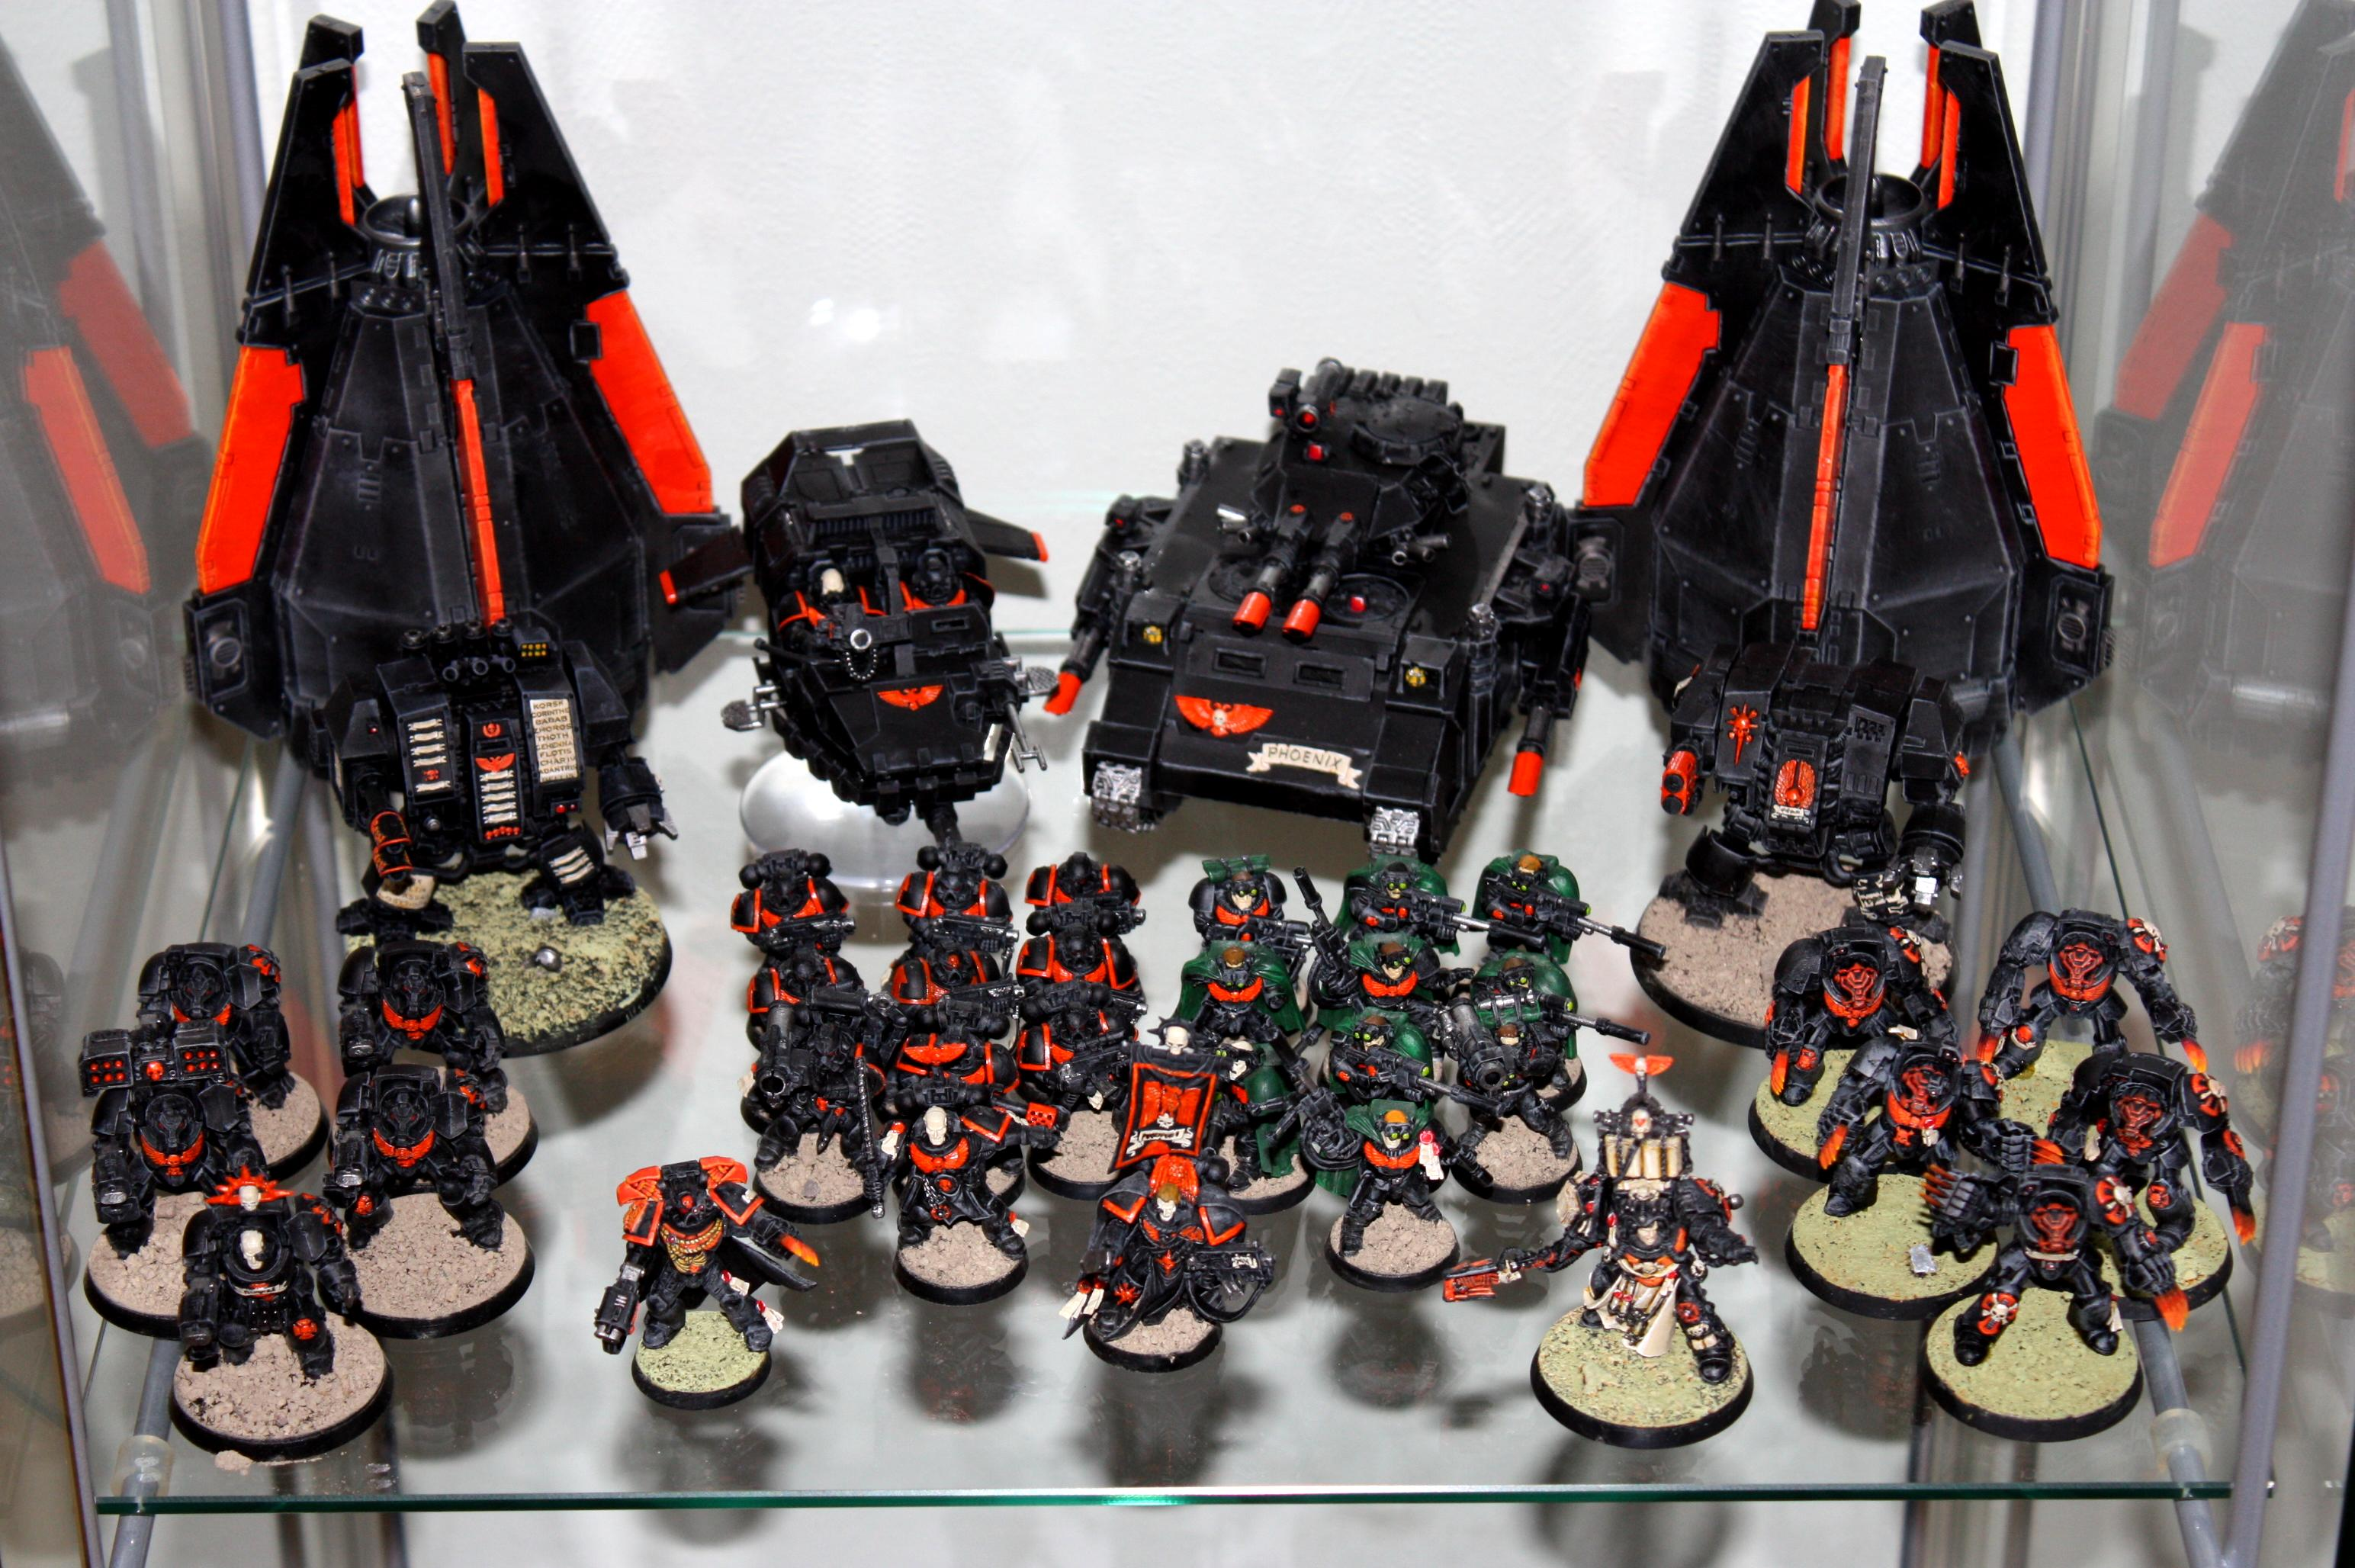 Armies, Army, Chapter, Parade, Phoenix, Space Marines, Warhammer 40,000, Warhammer Fantasy